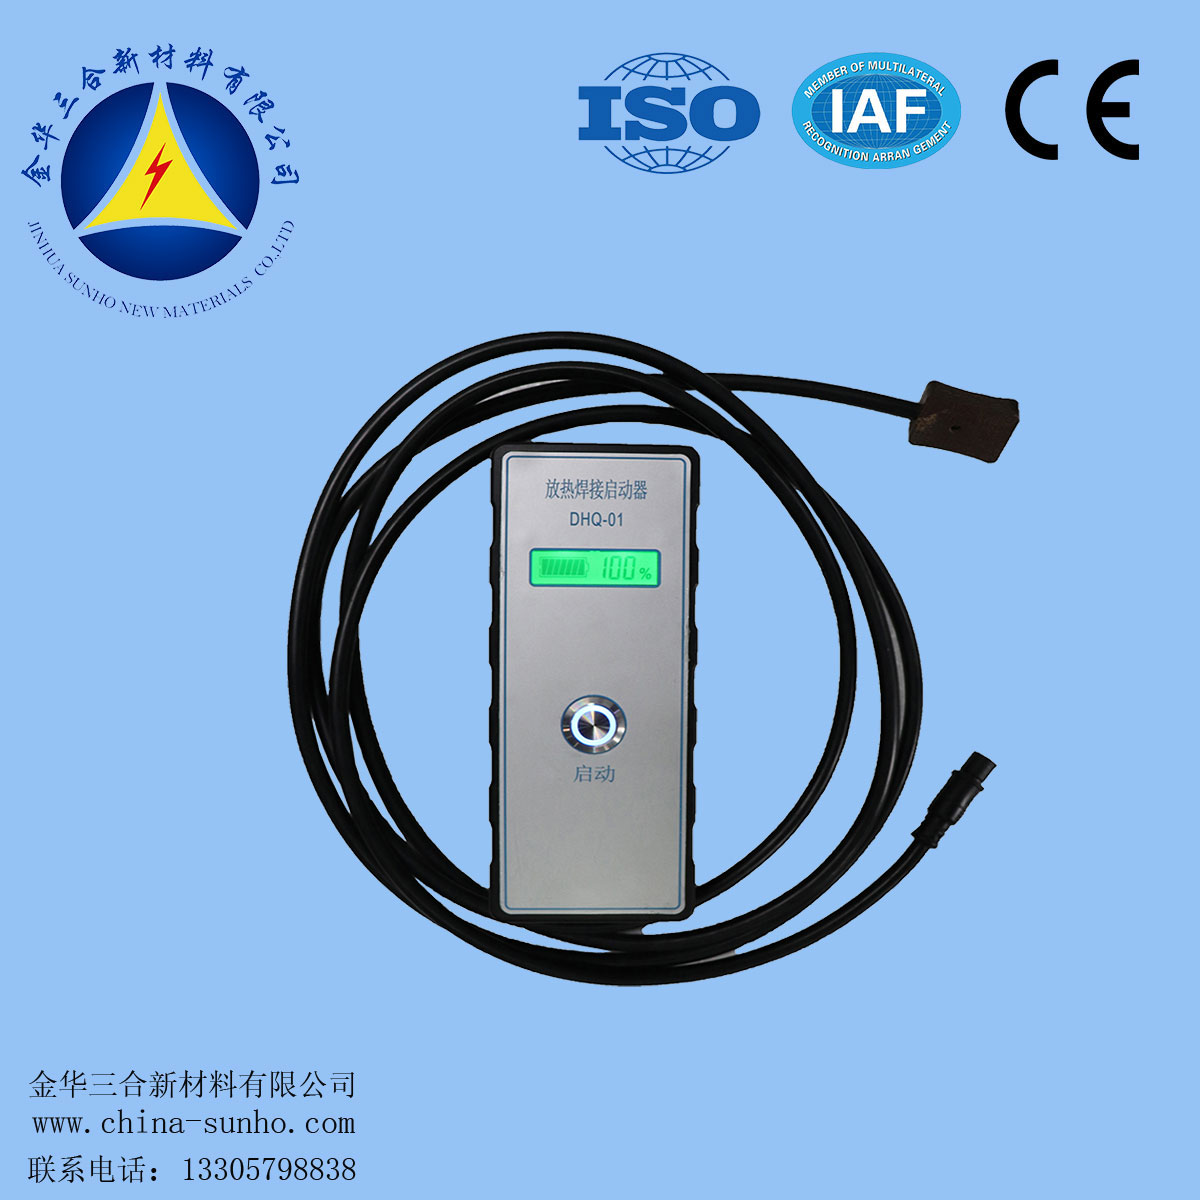 Our company successfully developed an exothermic welding electronic igniter